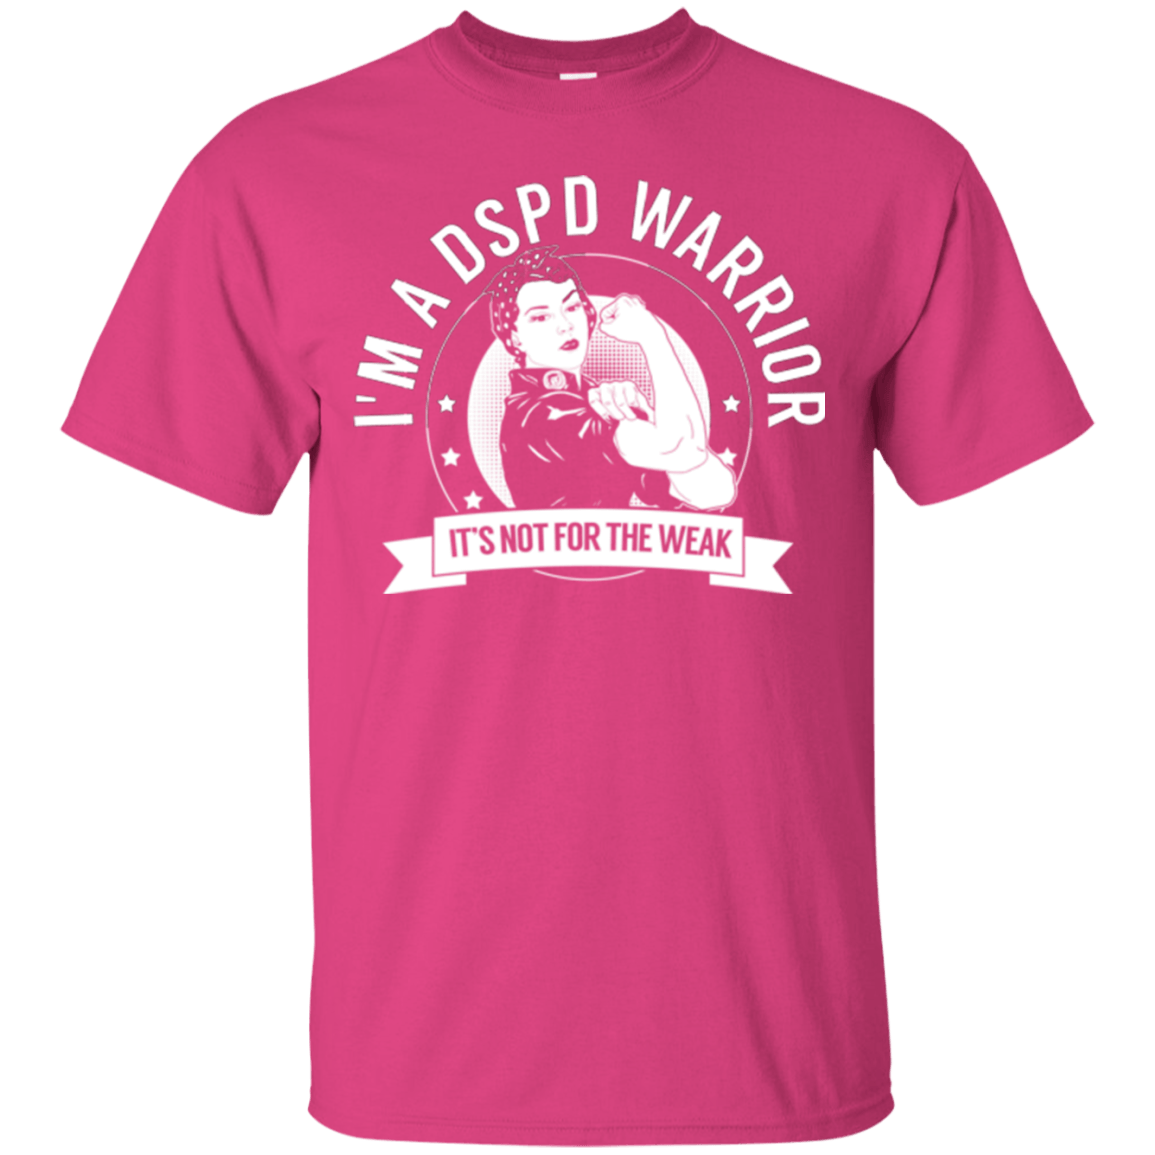 Delayed Sleep Phase Disorder - DSPD Warrior Not For The Weak Cotton T-Shirt - The Unchargeables